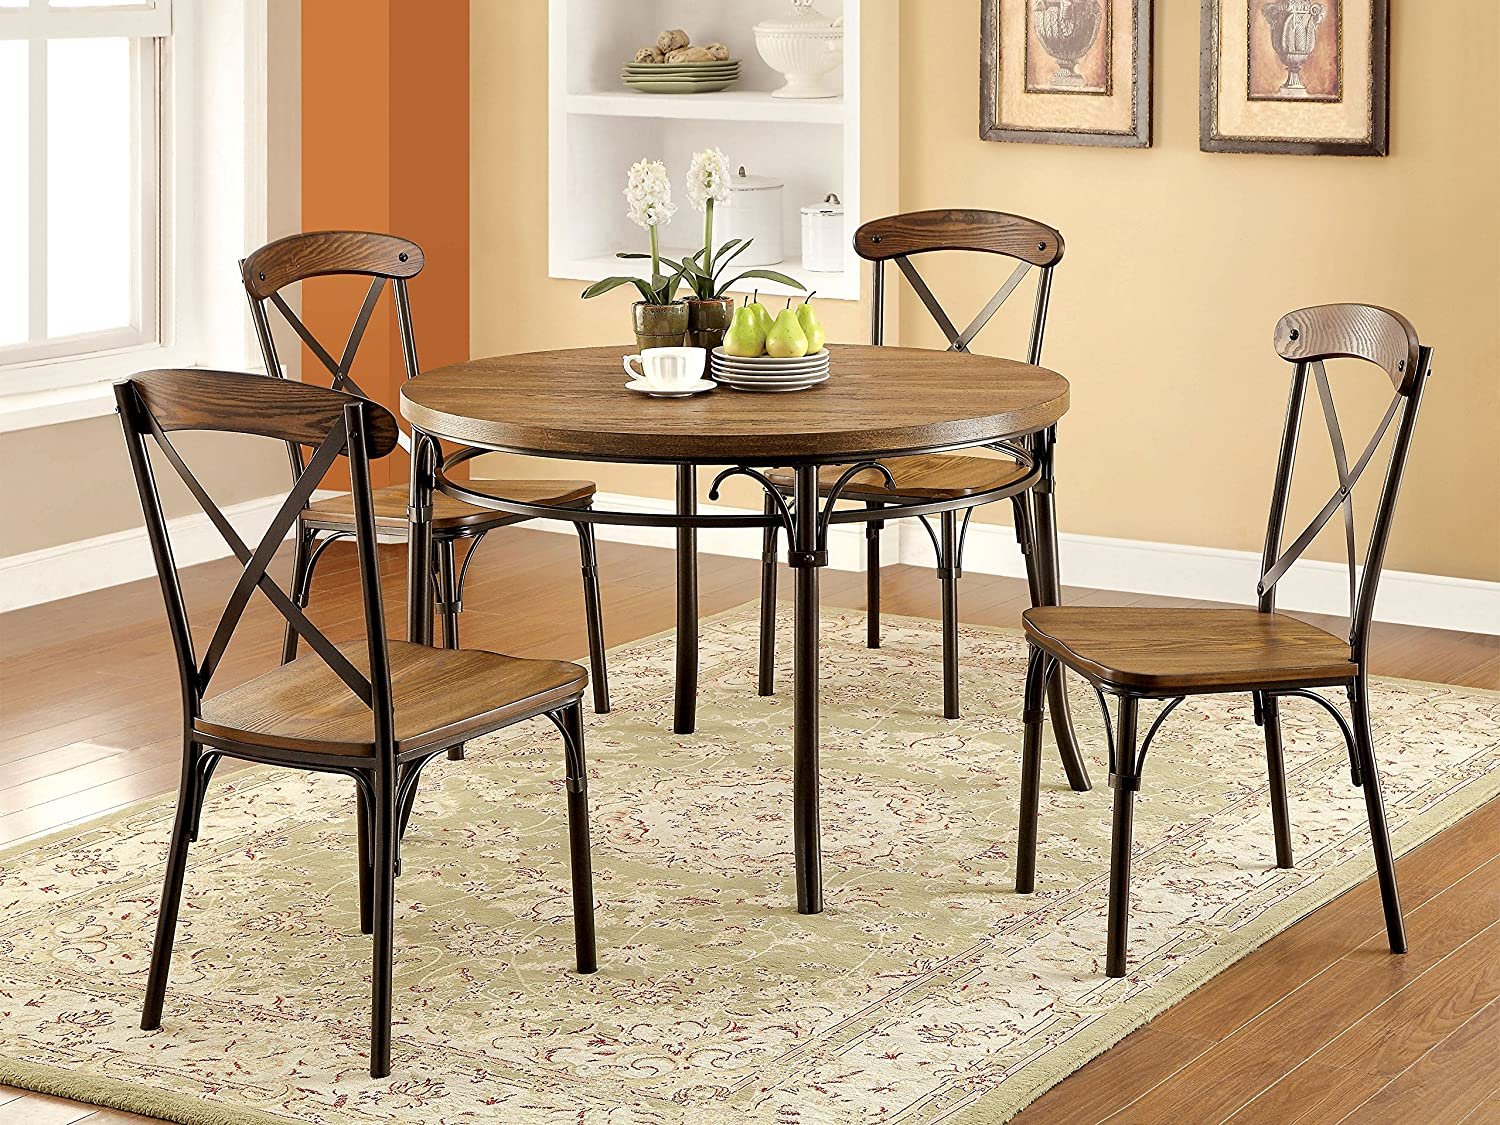 Amazon.com - Furniture of America Rizal Industrial Style Round Dining Chair Set of 2 - Chairs & Amazon.com - Furniture of America Rizal Industrial Style Round ...